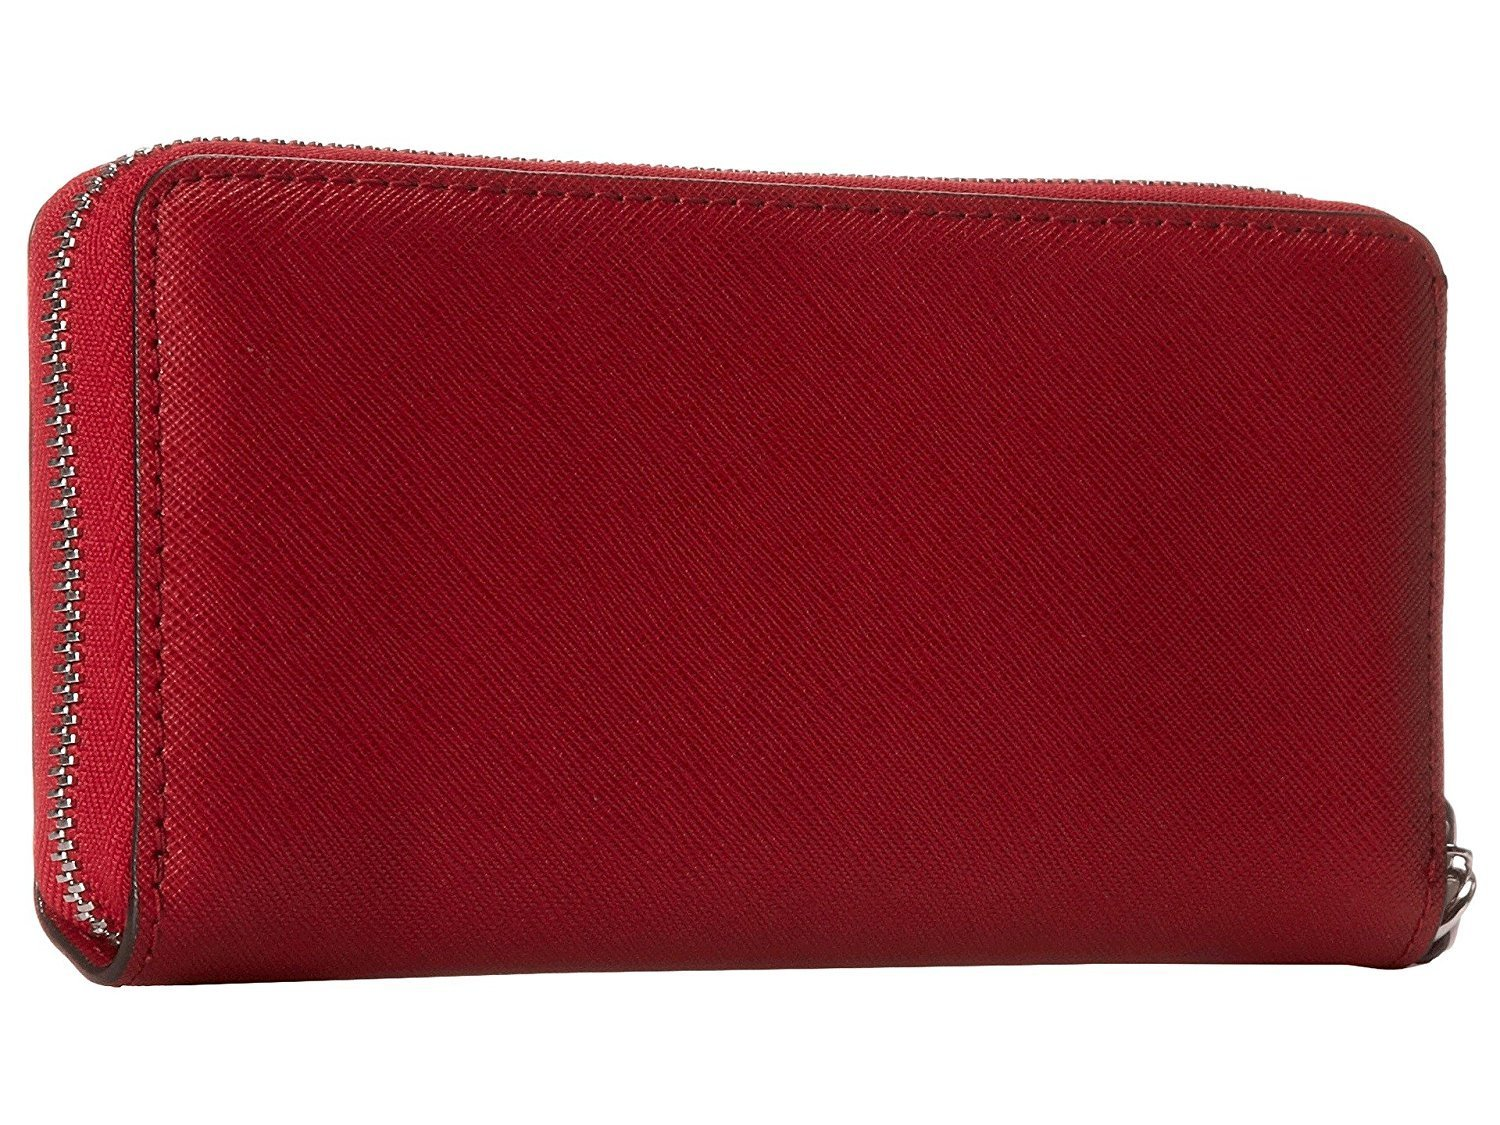 【限定品】Michael Kors: Jet Set Travel Large Phone Case 即発